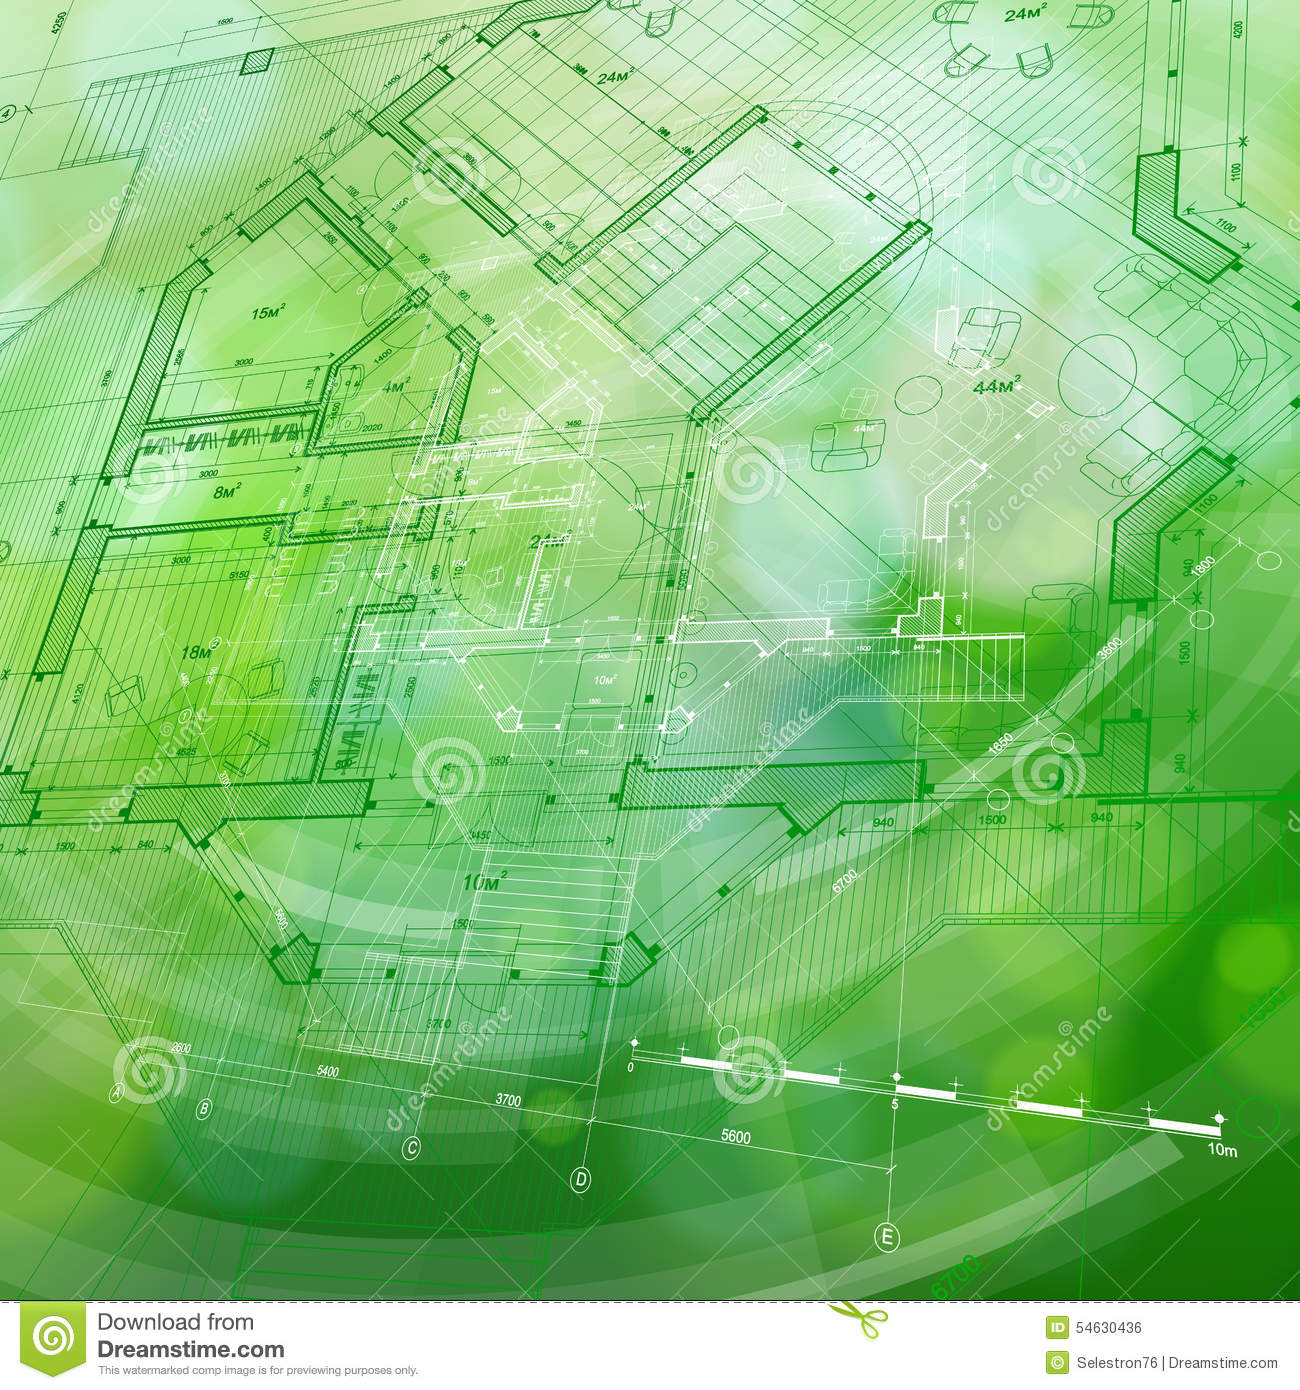 Blueprint house plan green technology radial background for Architecture blueprint